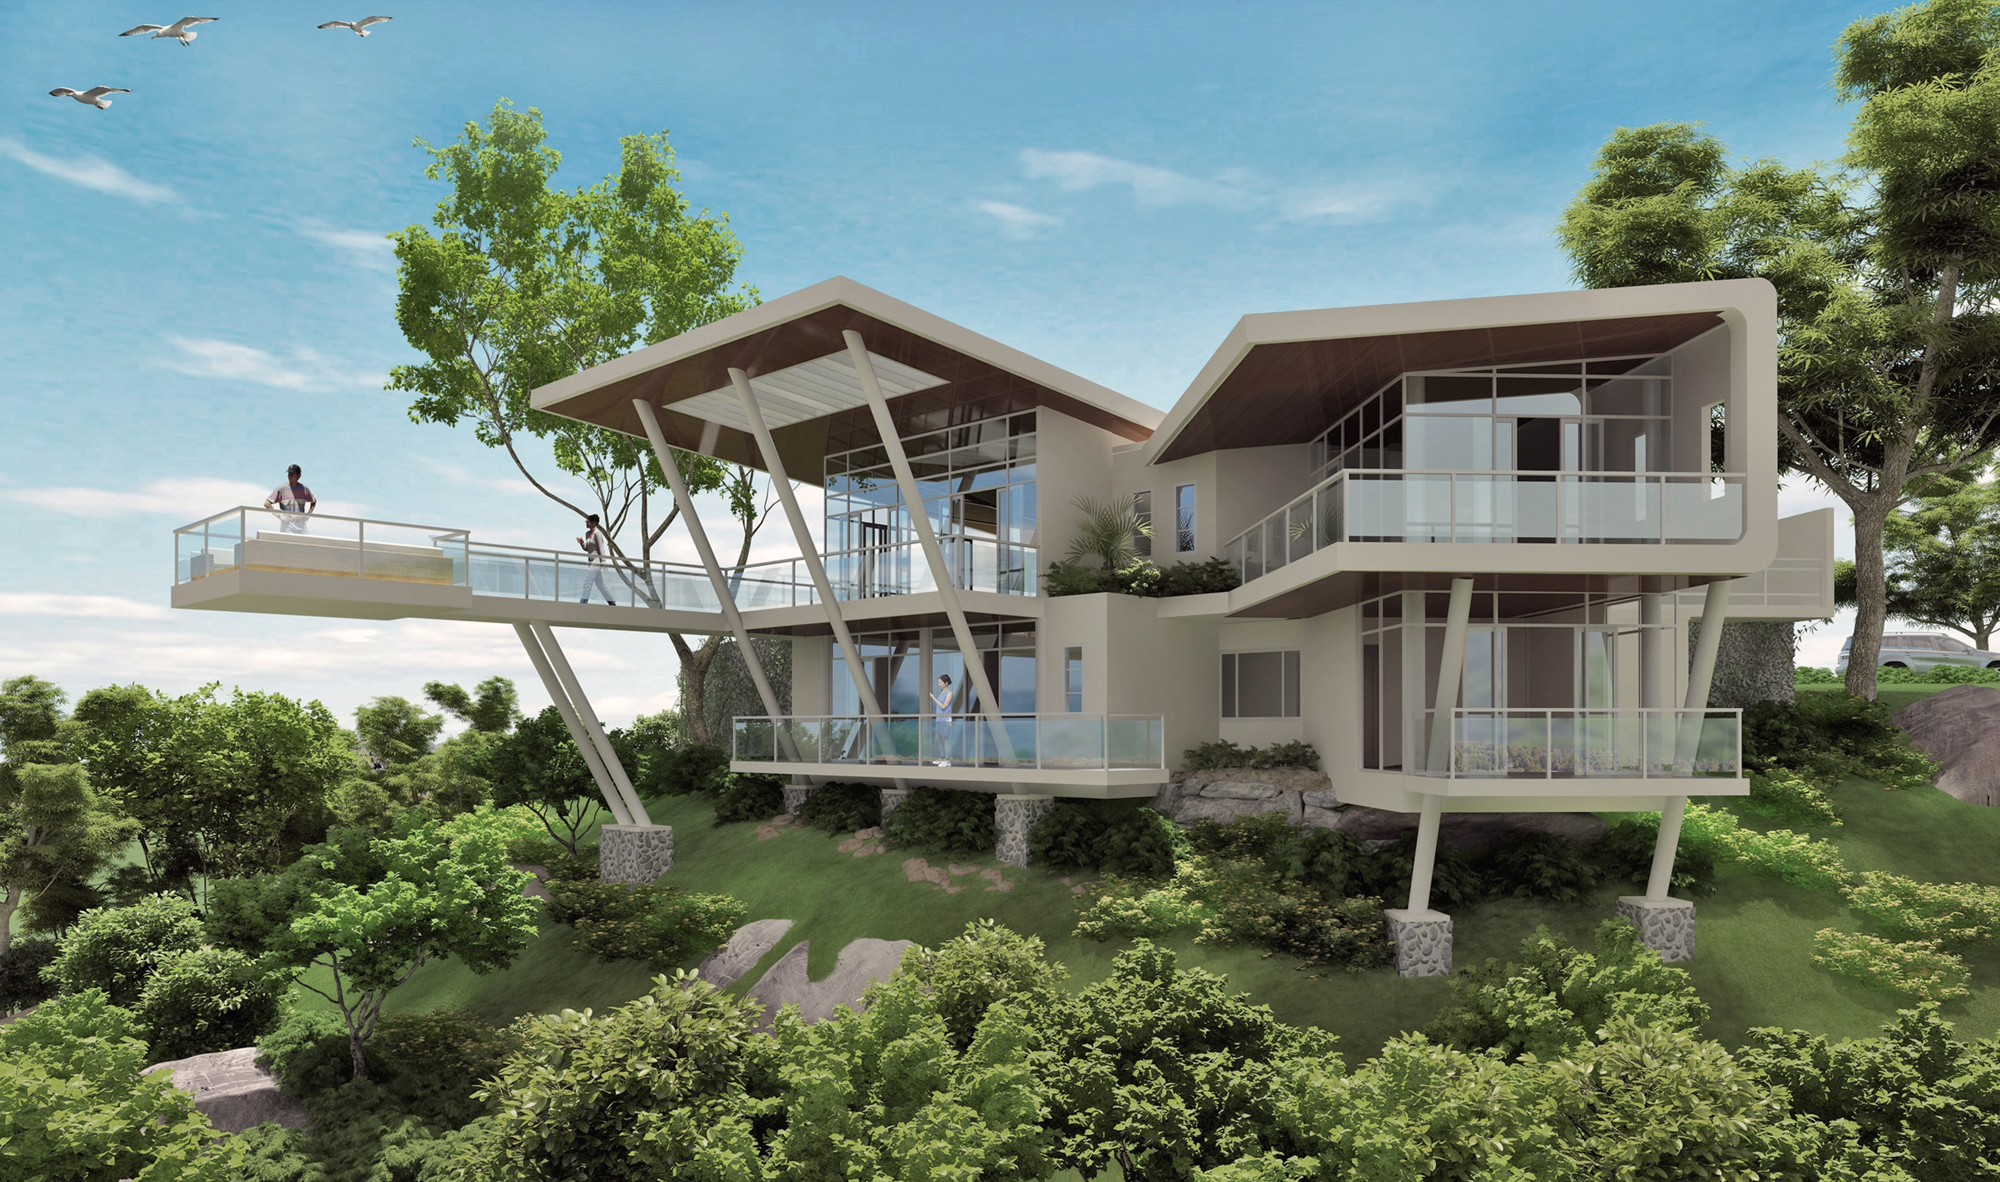 CLIFF RESIDENCE